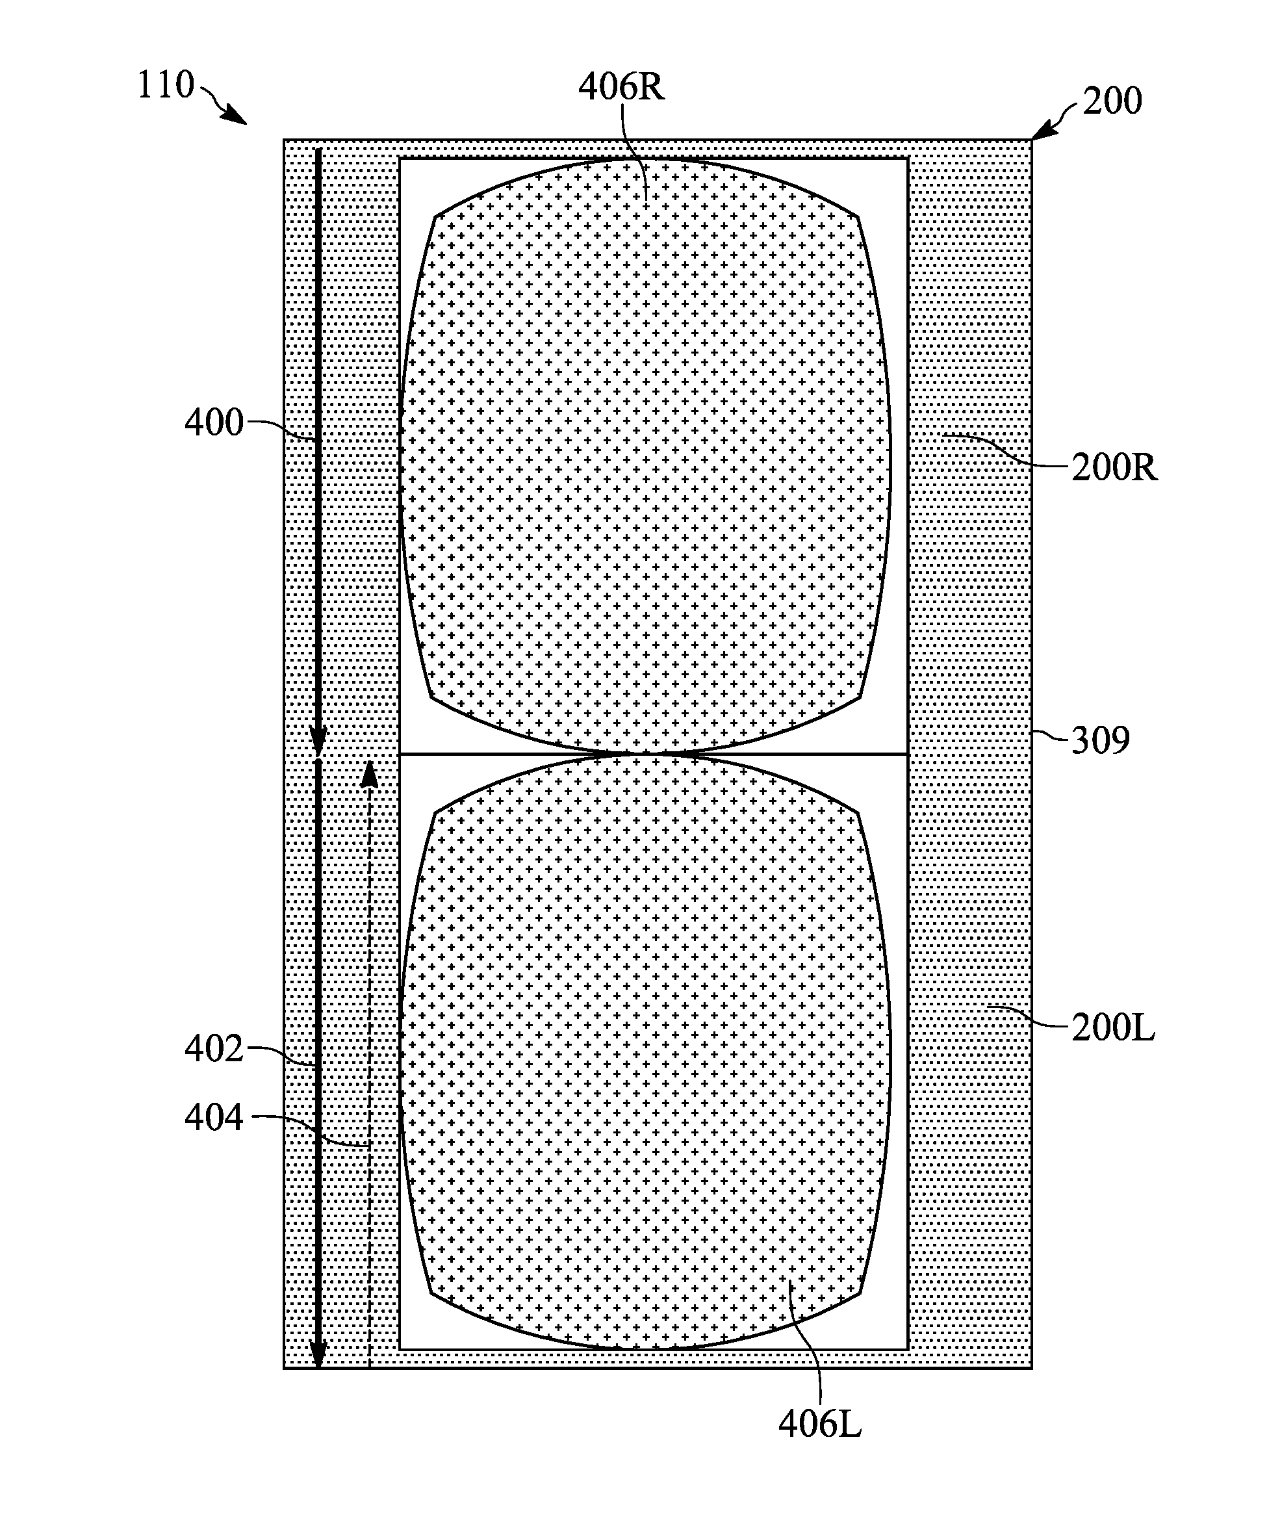 Detail from the patent showing the pixels of one screen controlled as two independent screens